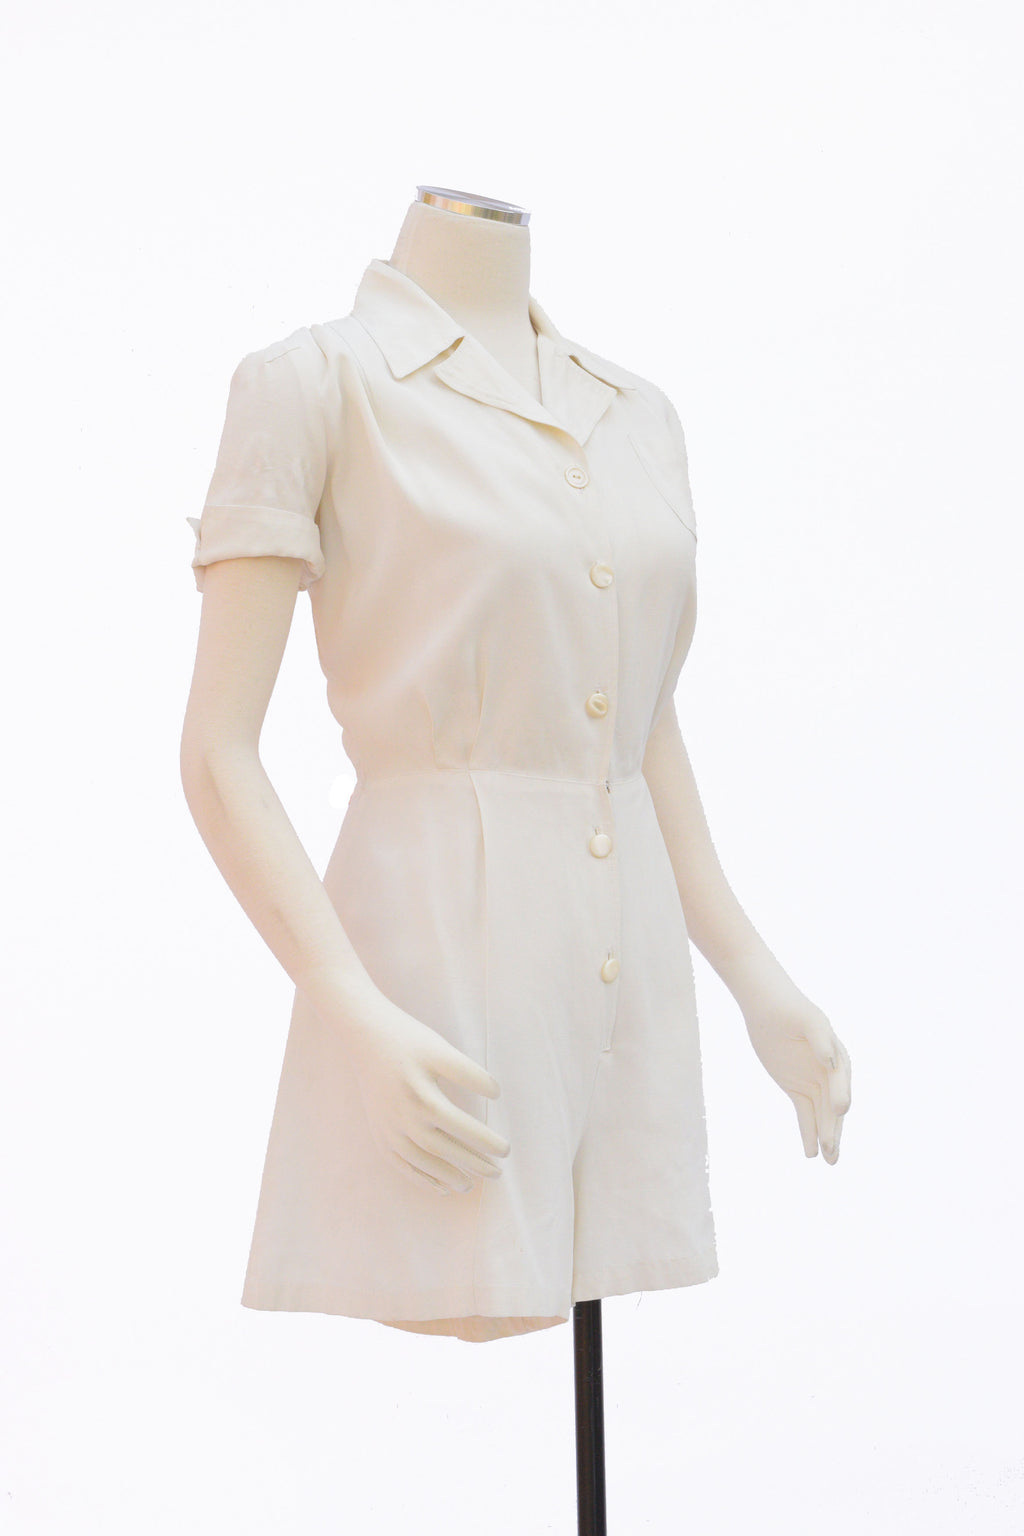 RESERVED 1940s Rayon Faille Playsuit with Smart Collar and Perfect Shorts